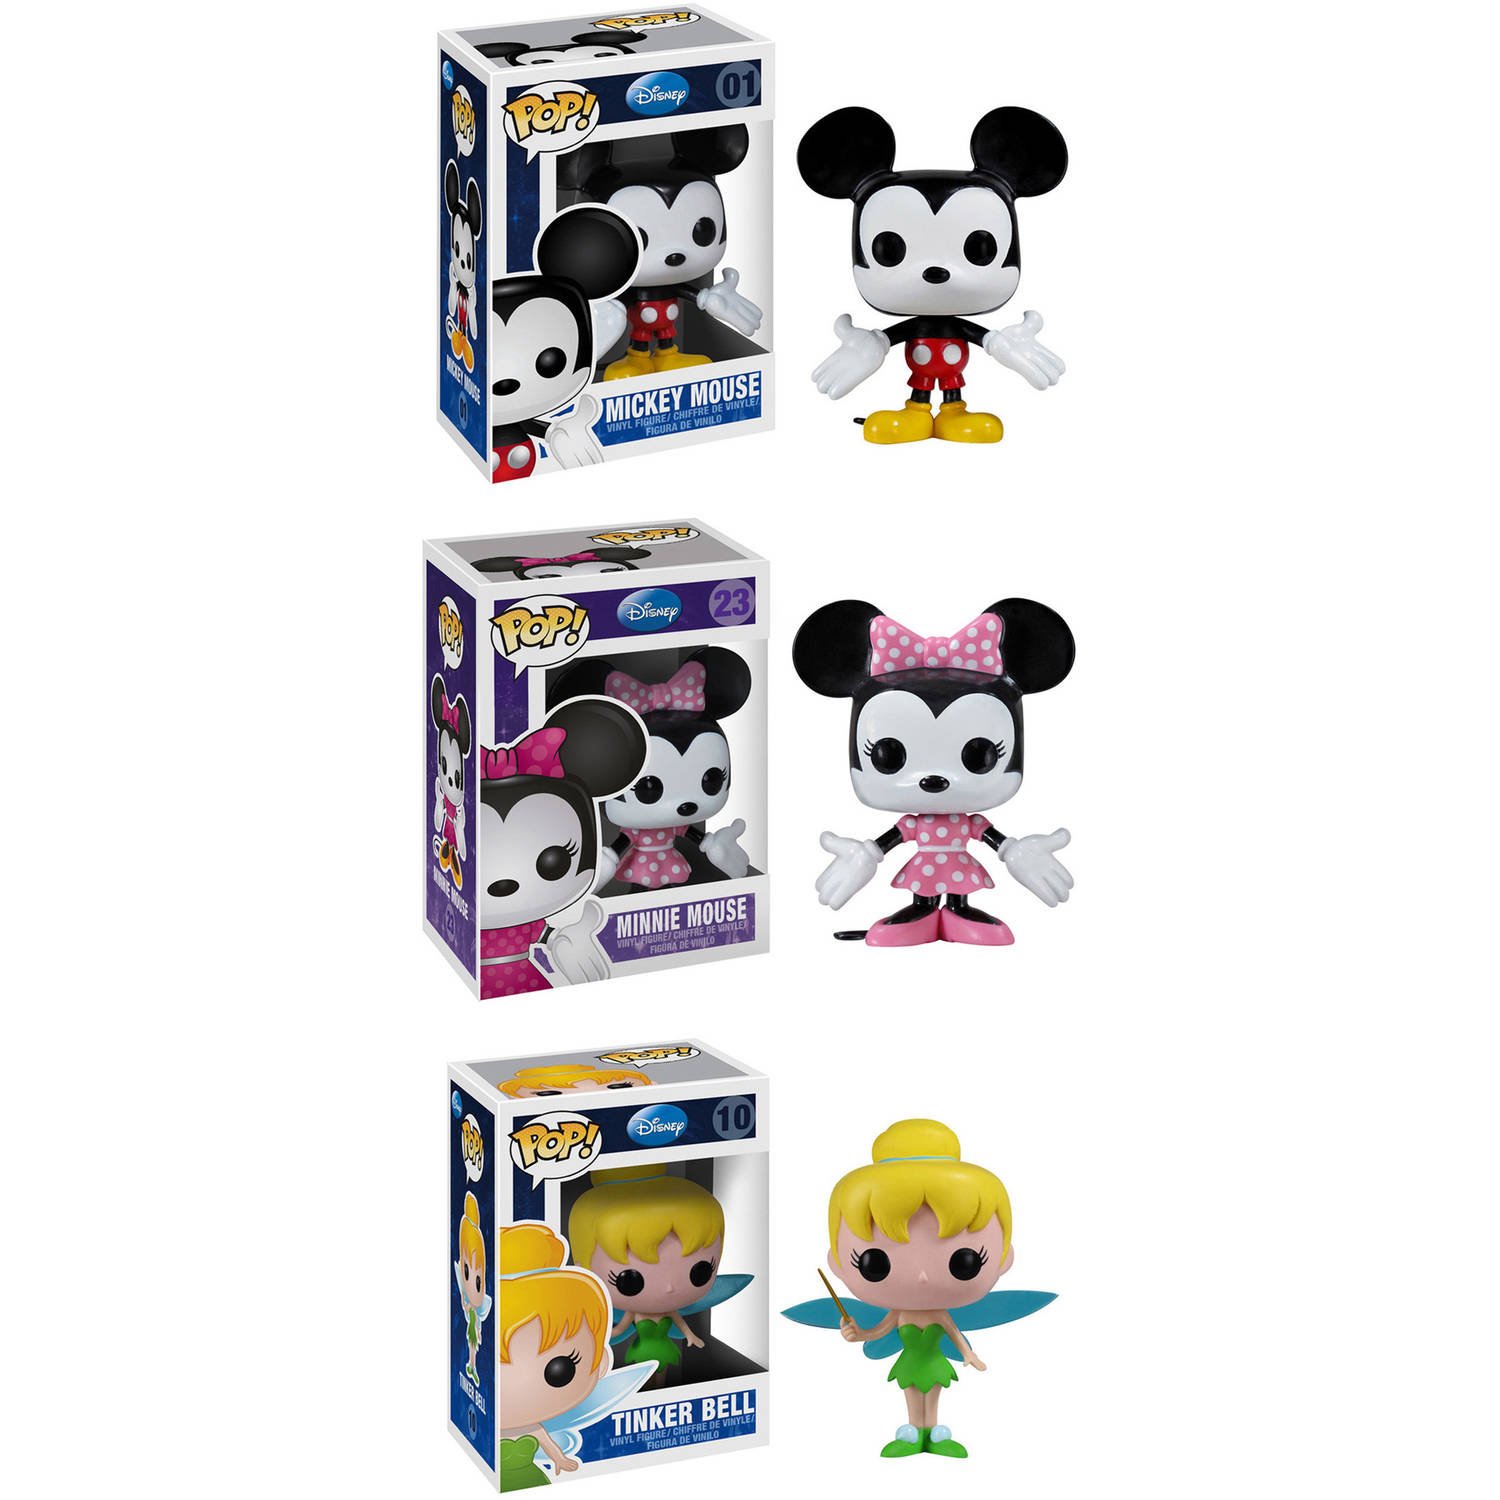 Funko Classic Disney POP! Disney Vinyl Collectors Set: Mickey Mouse, Minnie Mouse and Tinker Bell